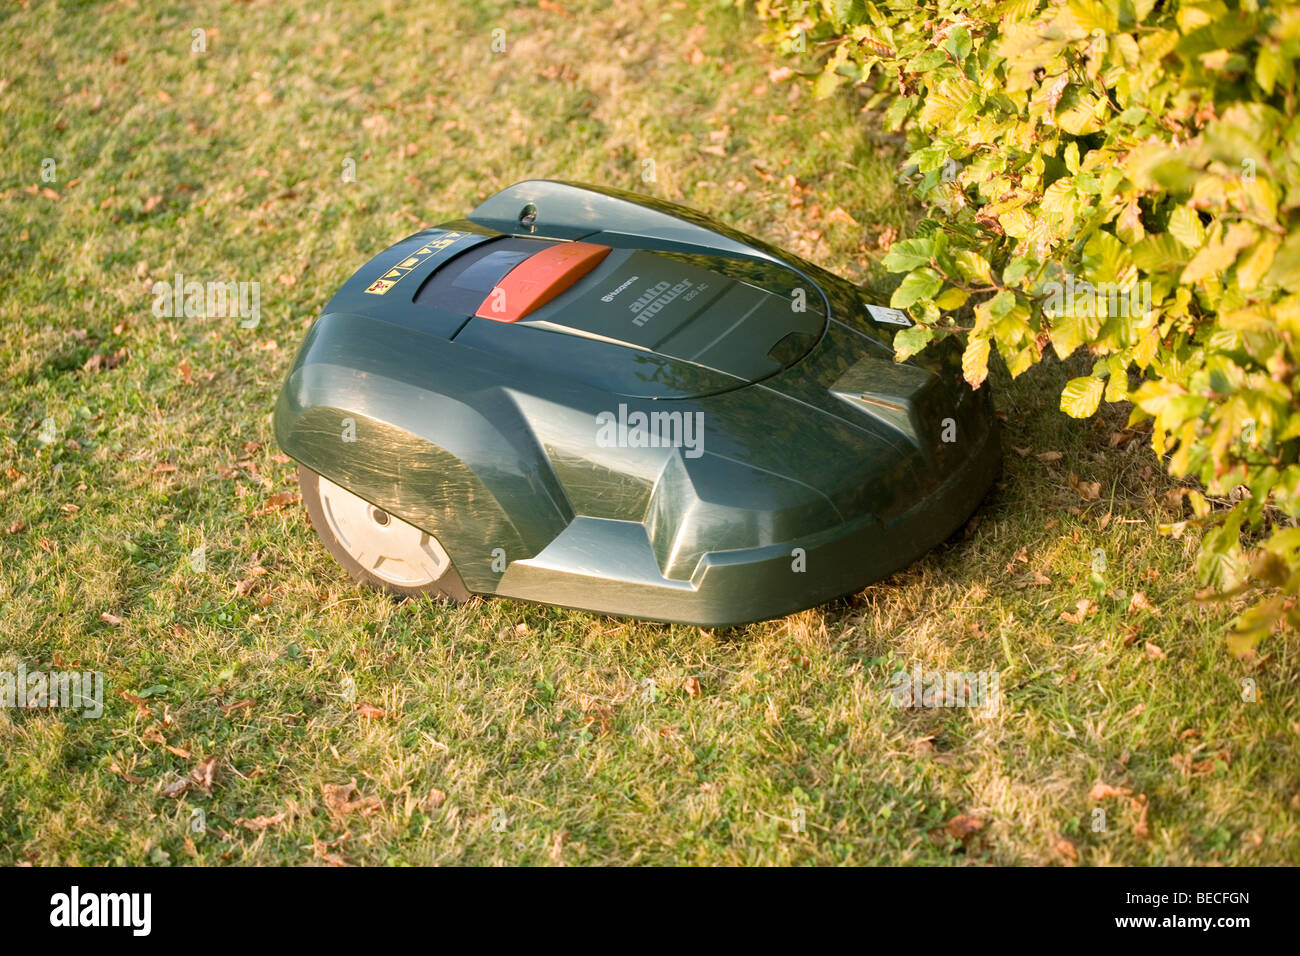 Automatic robot lawn mower cutting grass and running into a hedge Stock Photo